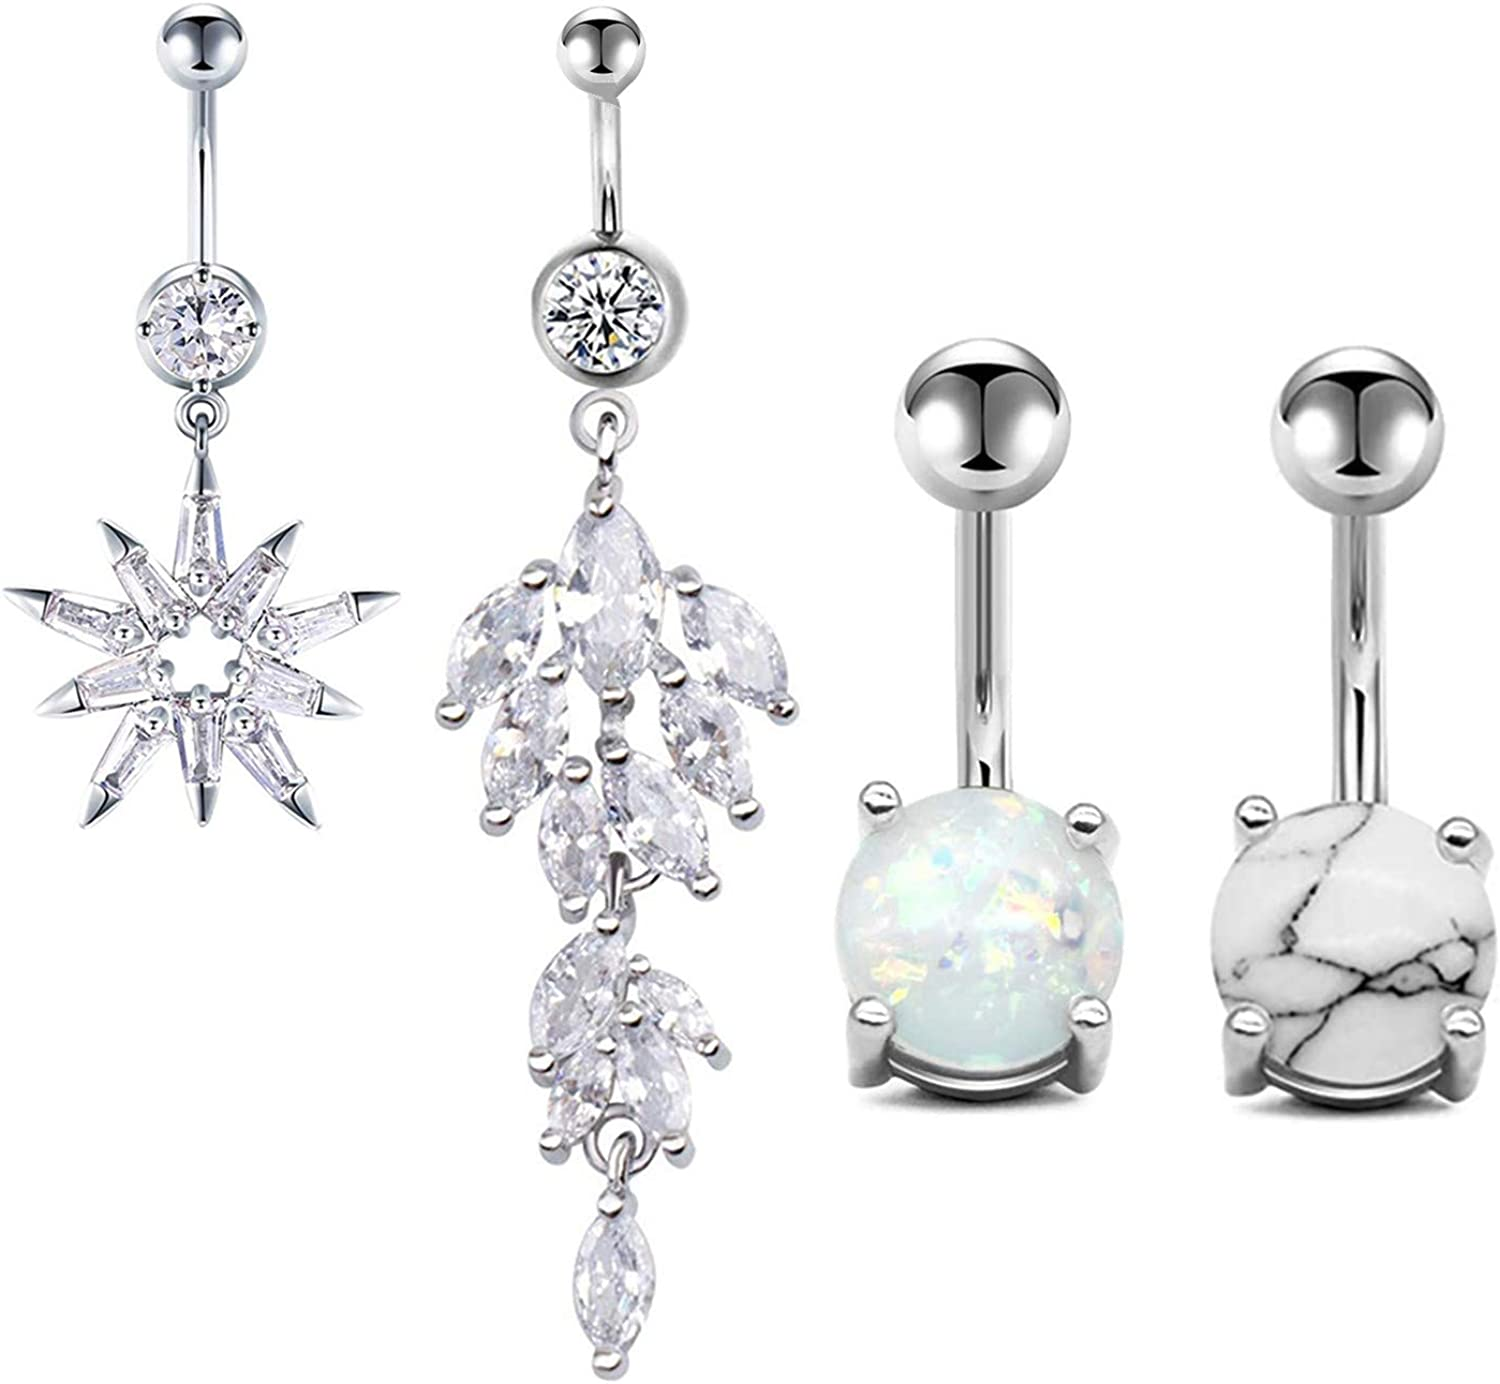 Amazon Com Cilkus 4pcs Diamond Belly Button Rings Marble Stone For Women Girls Natutal Mixed Stone Navel Rings Body Piercing Jewelry A 4 Pairs Silver Jewelry